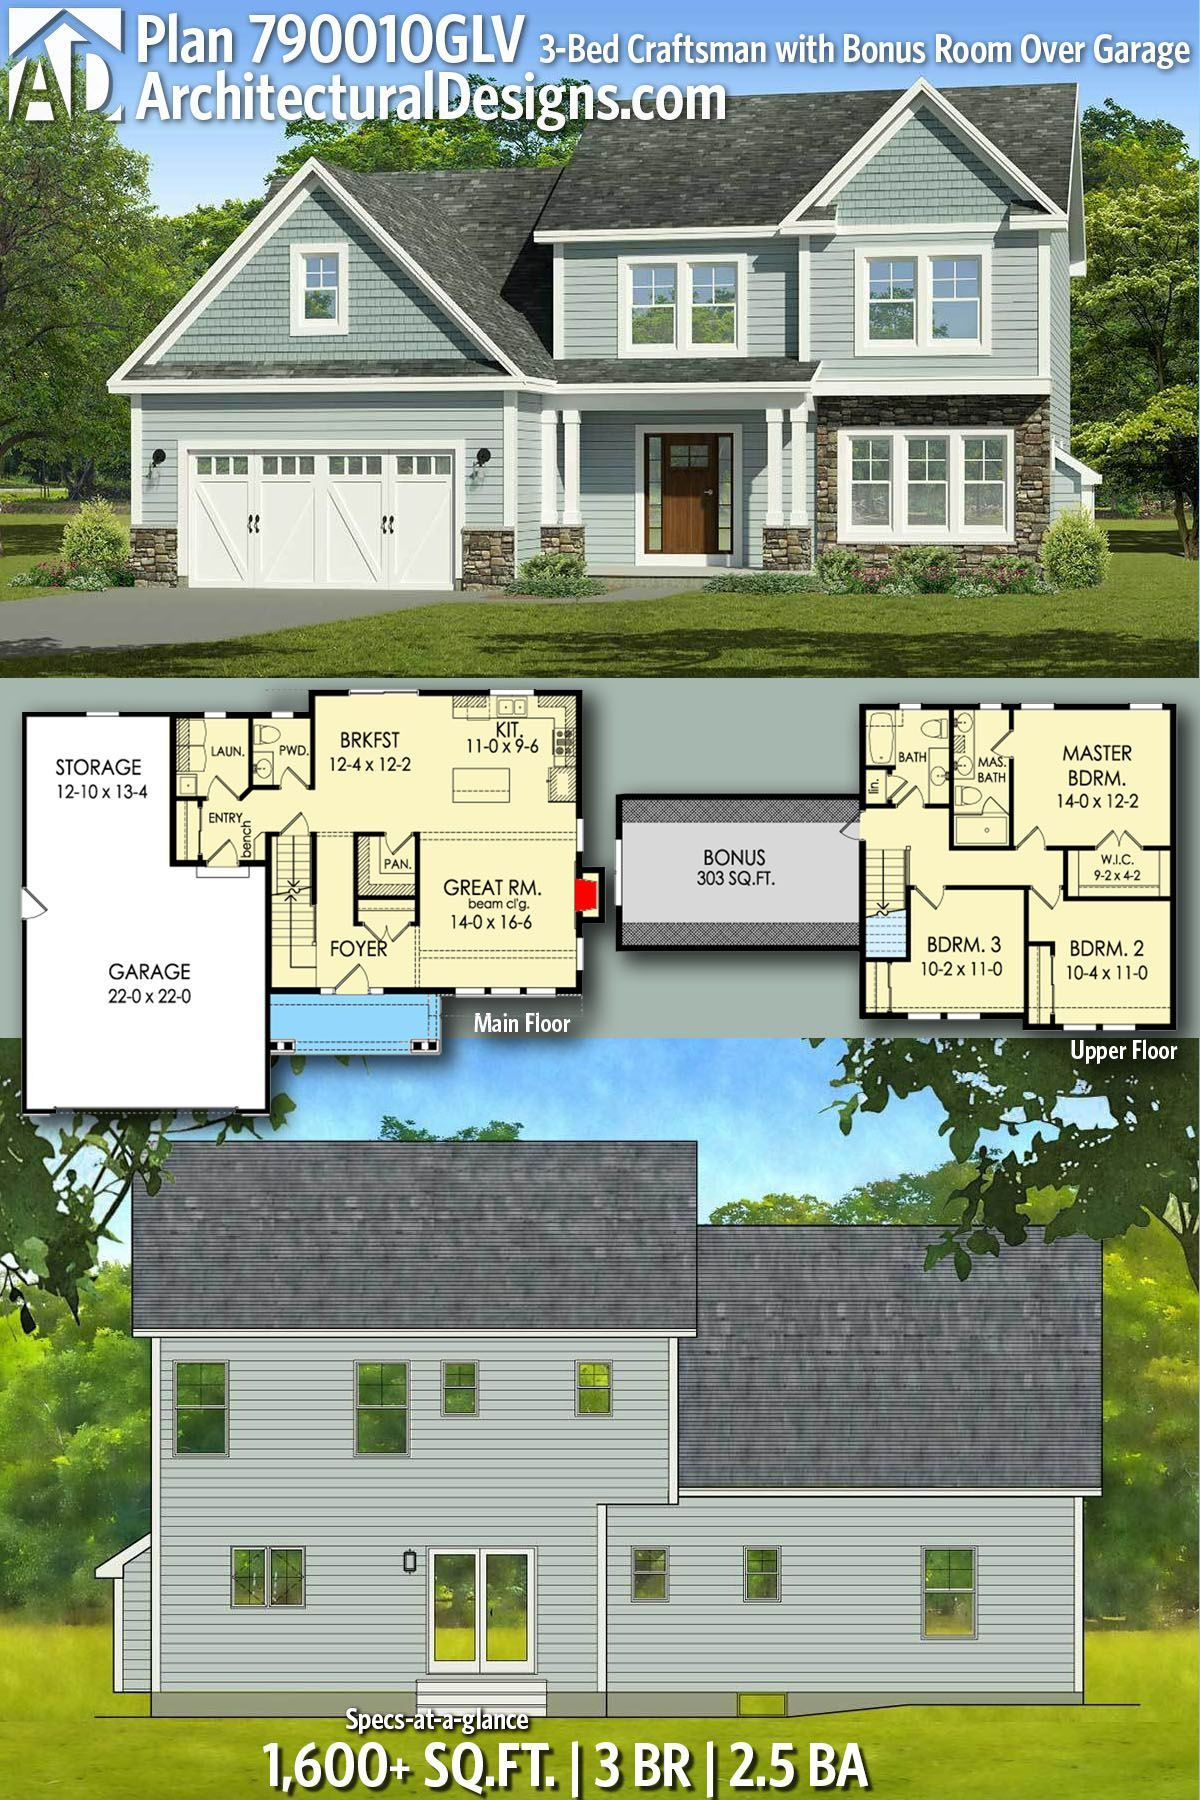 Architectural Designs Craftsman House Plan 790010GLV gives you 3 beds, 2.5 baths...        Architectural Designs Craftsman House Plan 790010GLV gives you 3 beds, 2.5 baths, and over 1,600 sq. ft. of heated living space PLUS a bonus room over the garage. Ready when you are. Where do YOU want to build? #790010GLV #adhouseplans #architecturaldesigns #houseplan #architecture #newhome #newconstruction #newhouse #homedesign #dreamhome #dreamhouse #homeplan #architecture #architect #craftsman #...